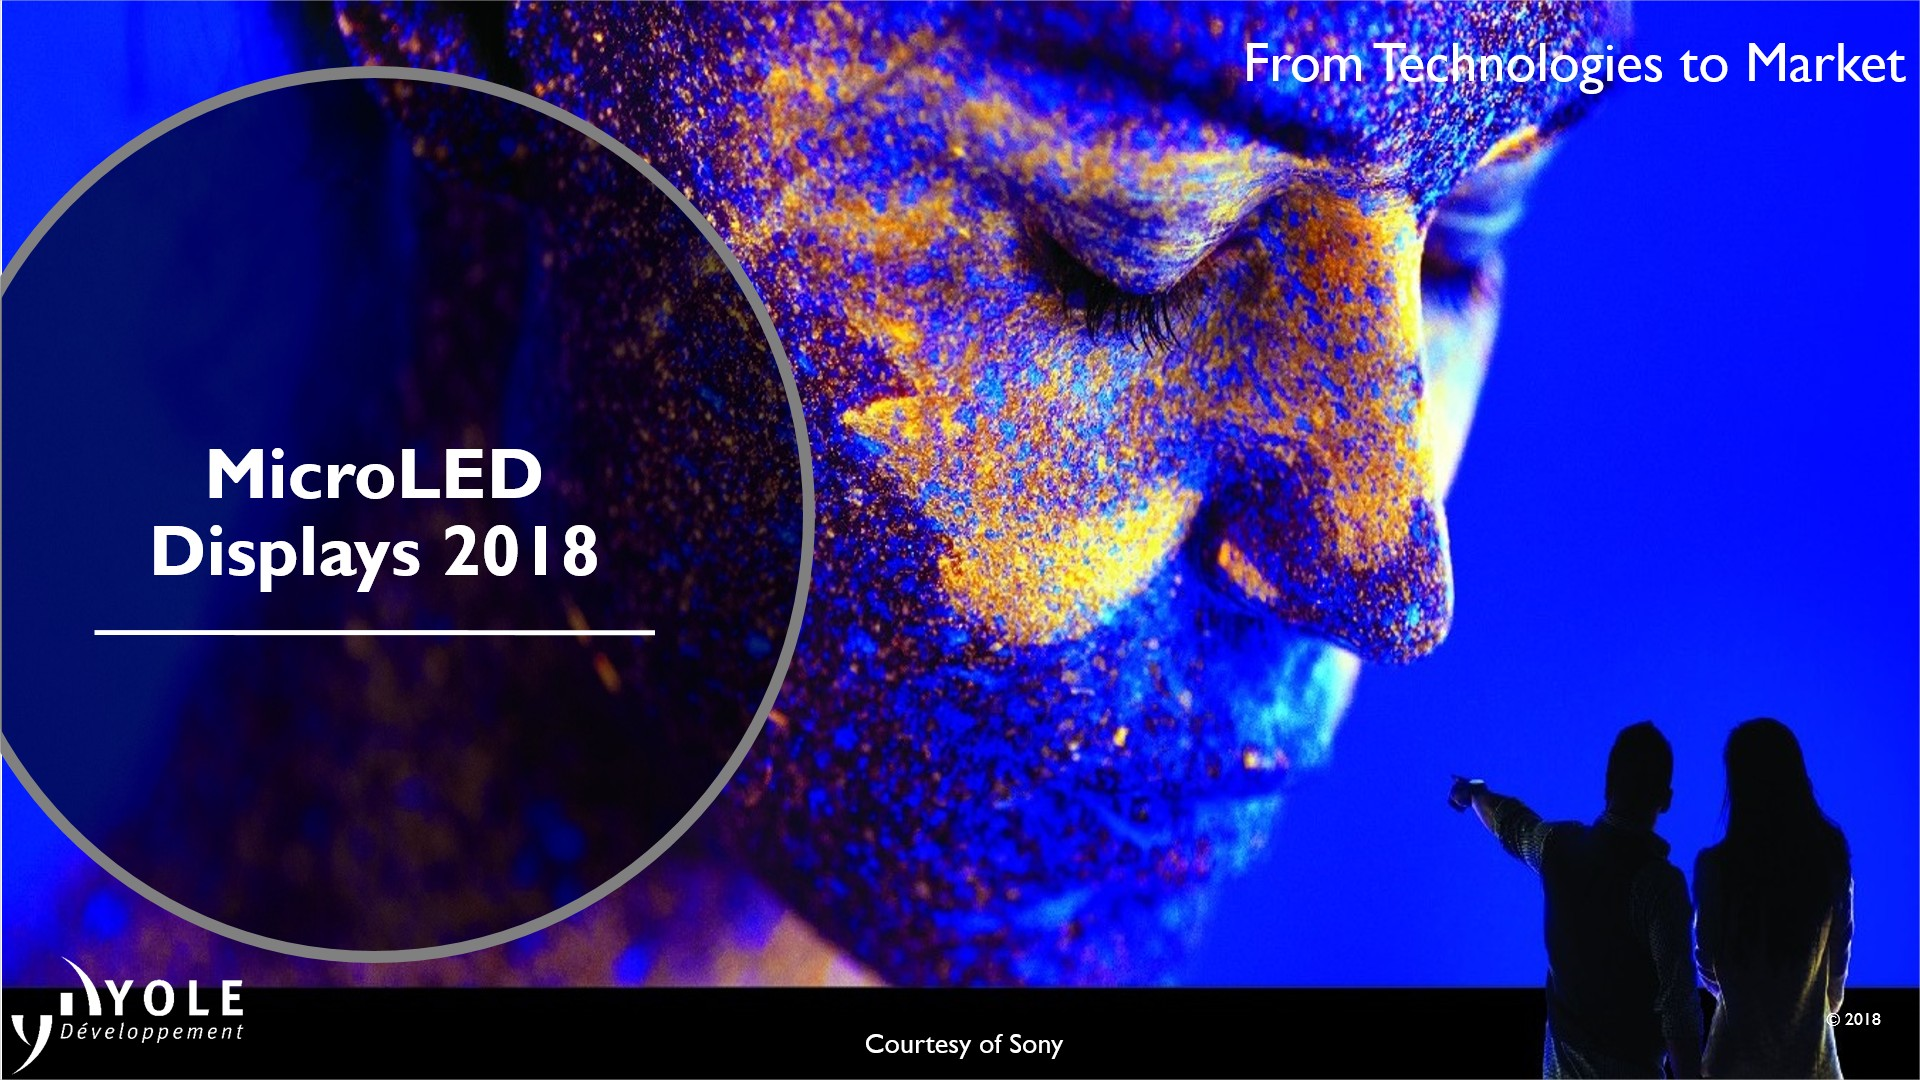 couv MicroLED displays july2018